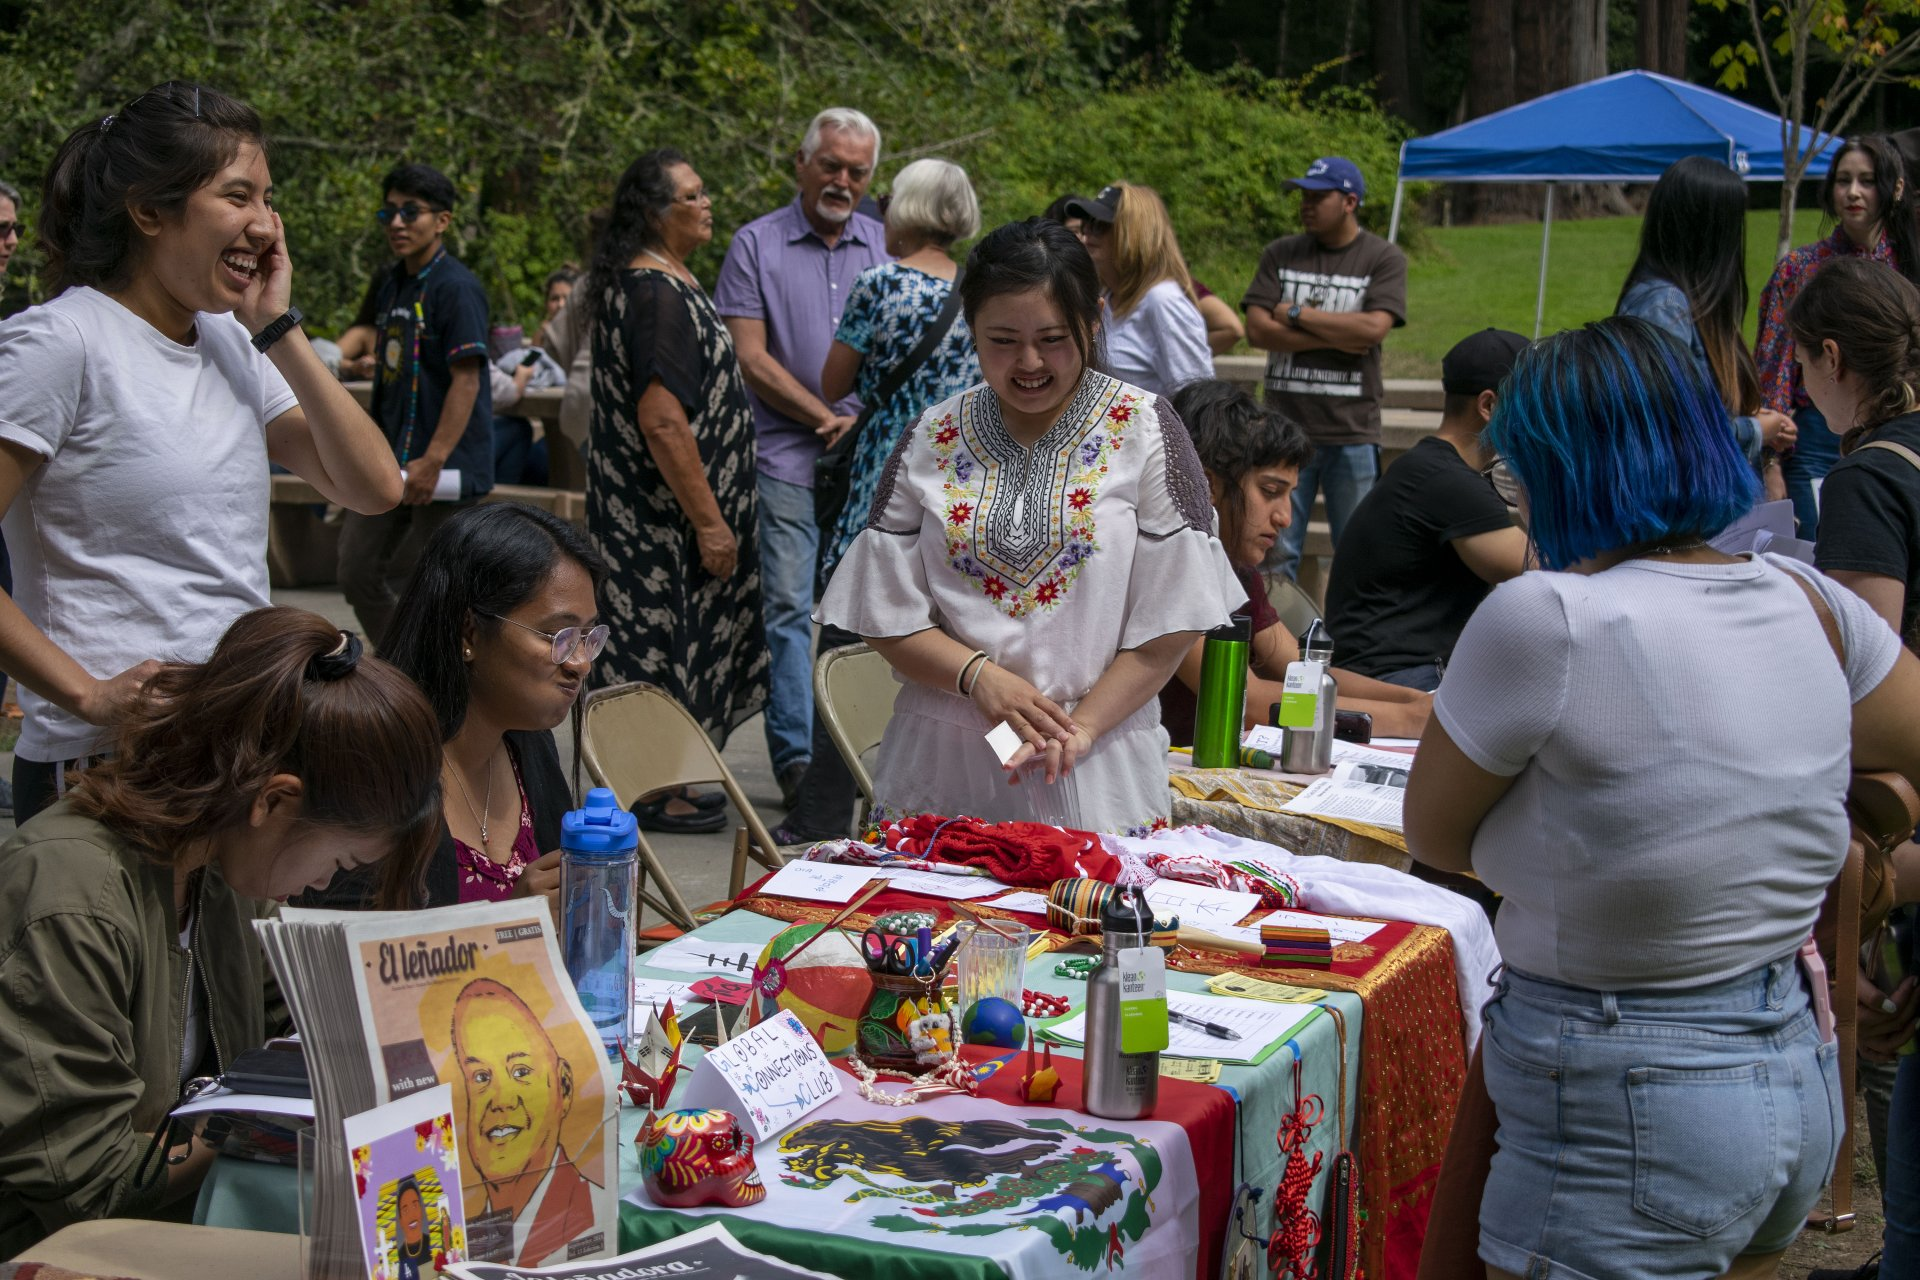 A table at the Convivio de Bienvenida, a Convivial Welcome from HSU's El Centro Académico Cultural on Sept. 15. The event, held at Arcata's Redwood  Park, housed tables for resources at HSU and the surrounding community. | Photo by James Wilde.